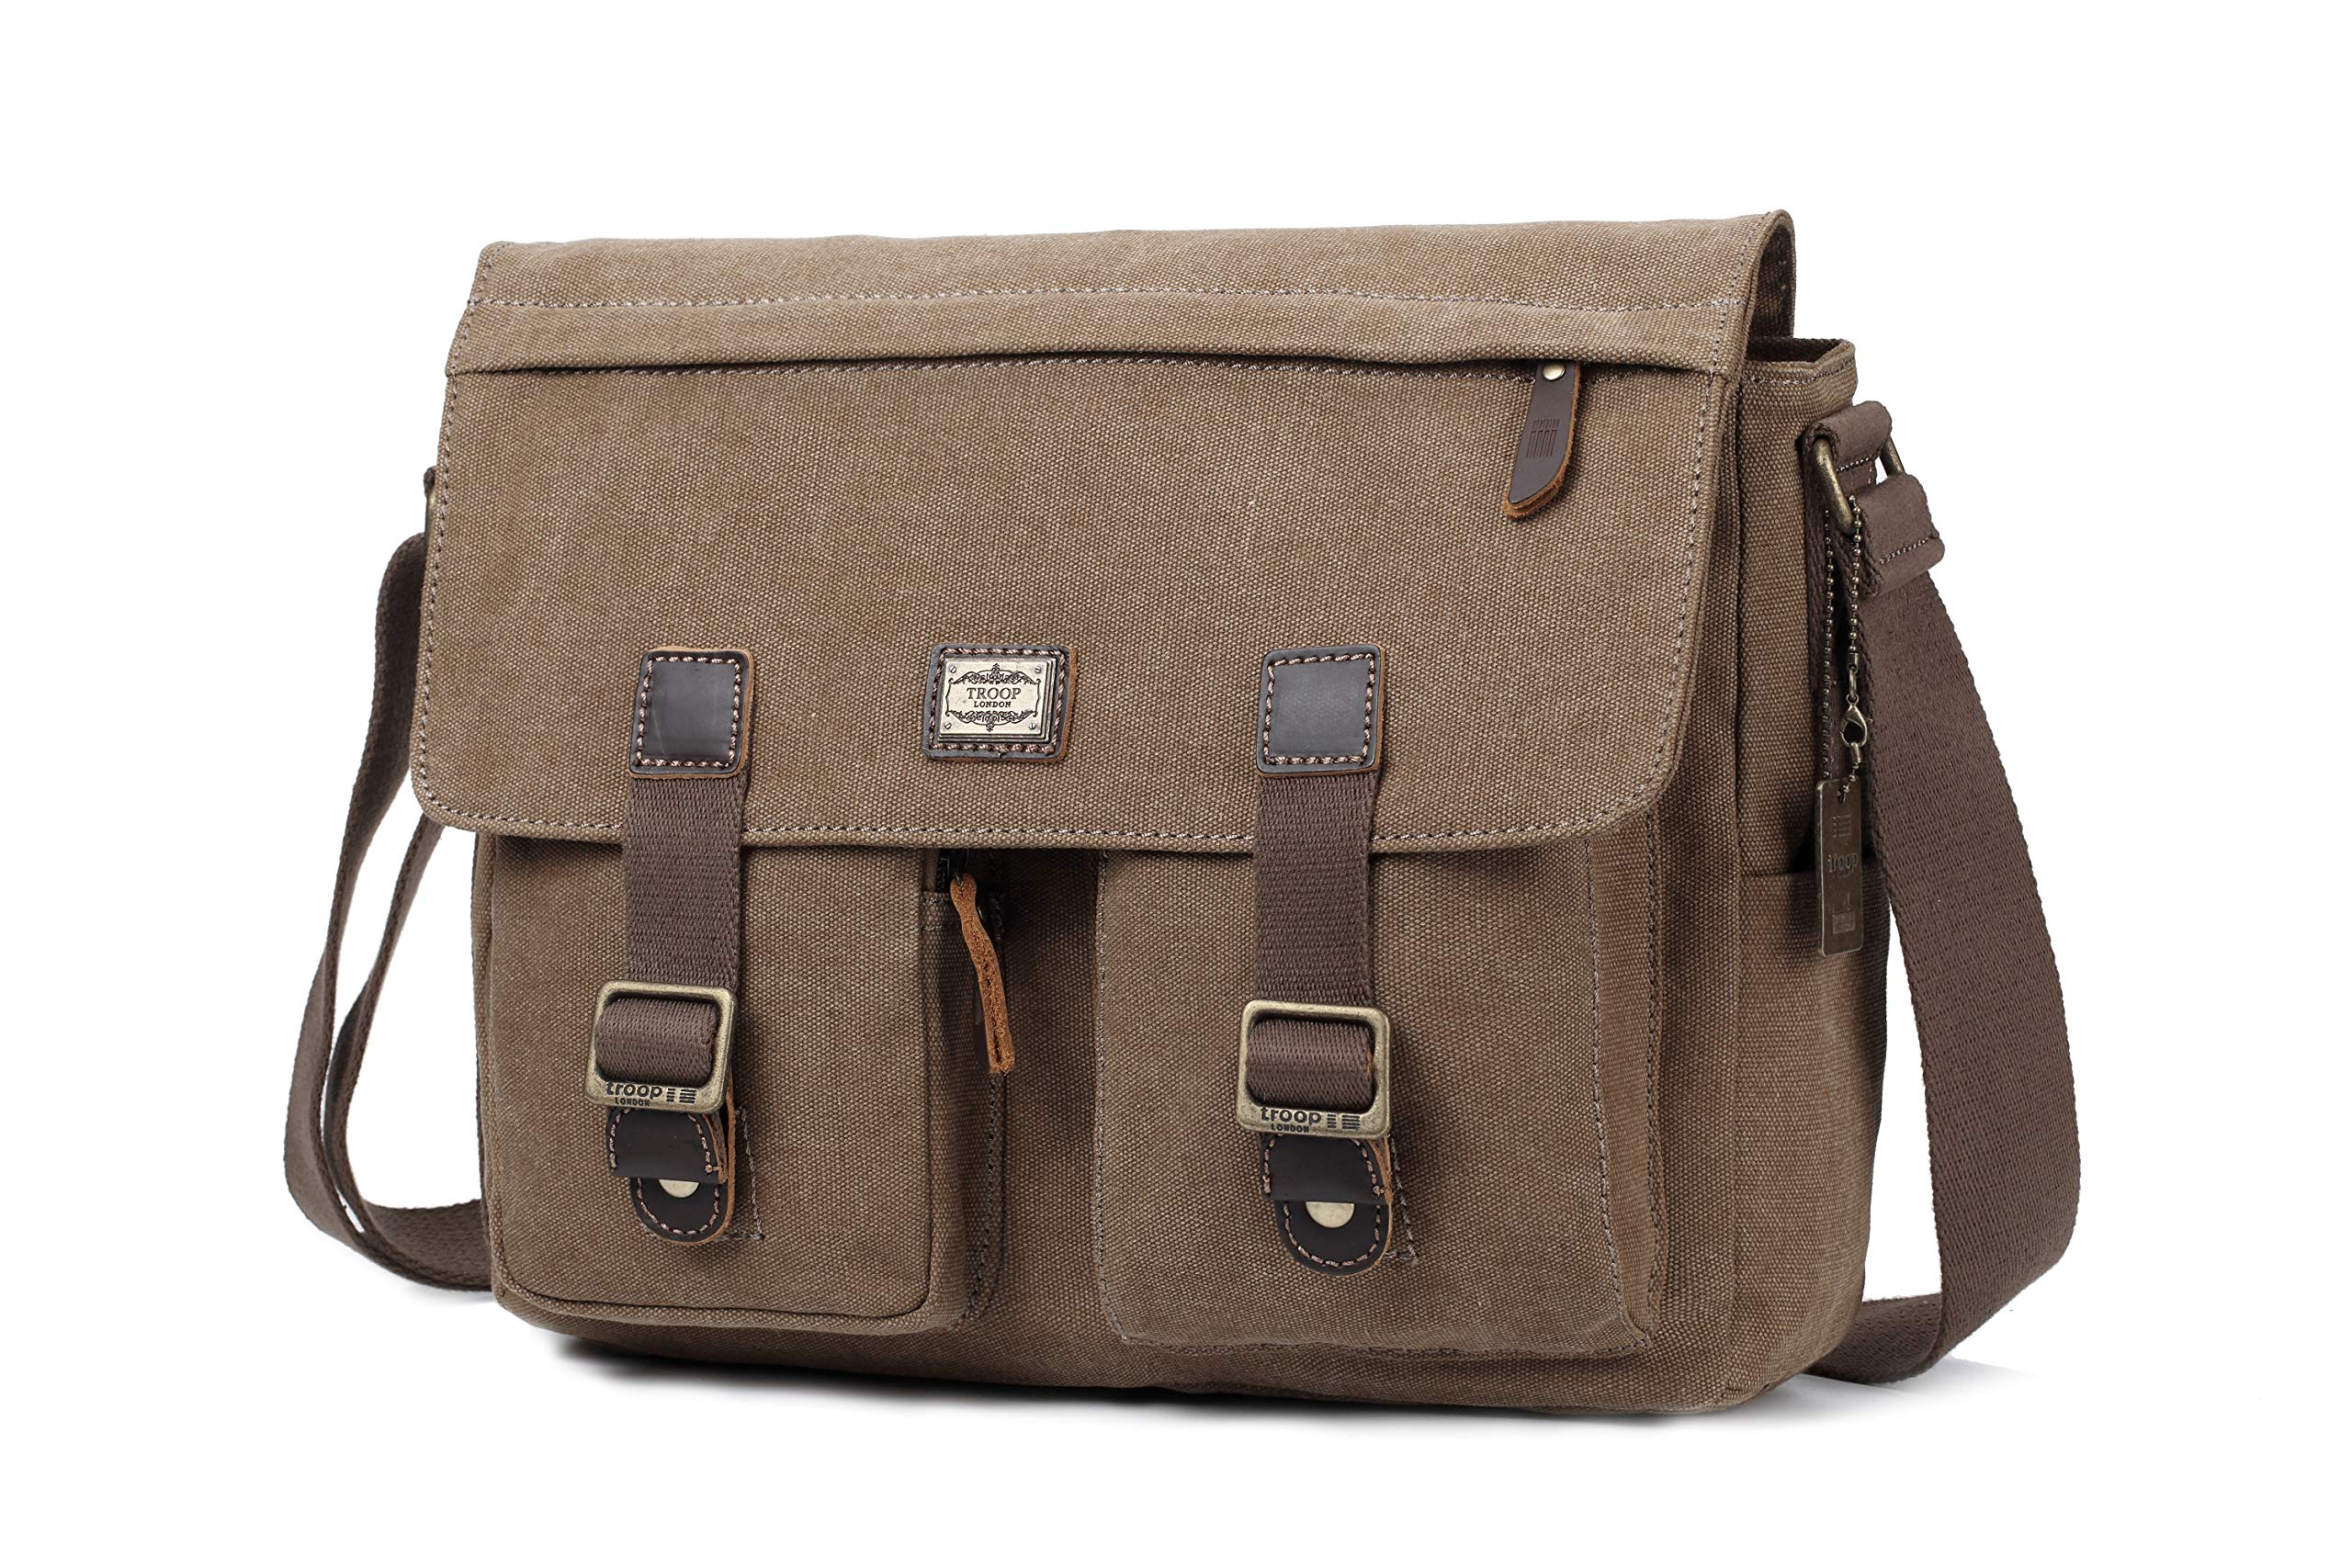 935b24326d20 Troop London Canvas Messenger Bag Fits Up To 15 Inch Laptop Size ...